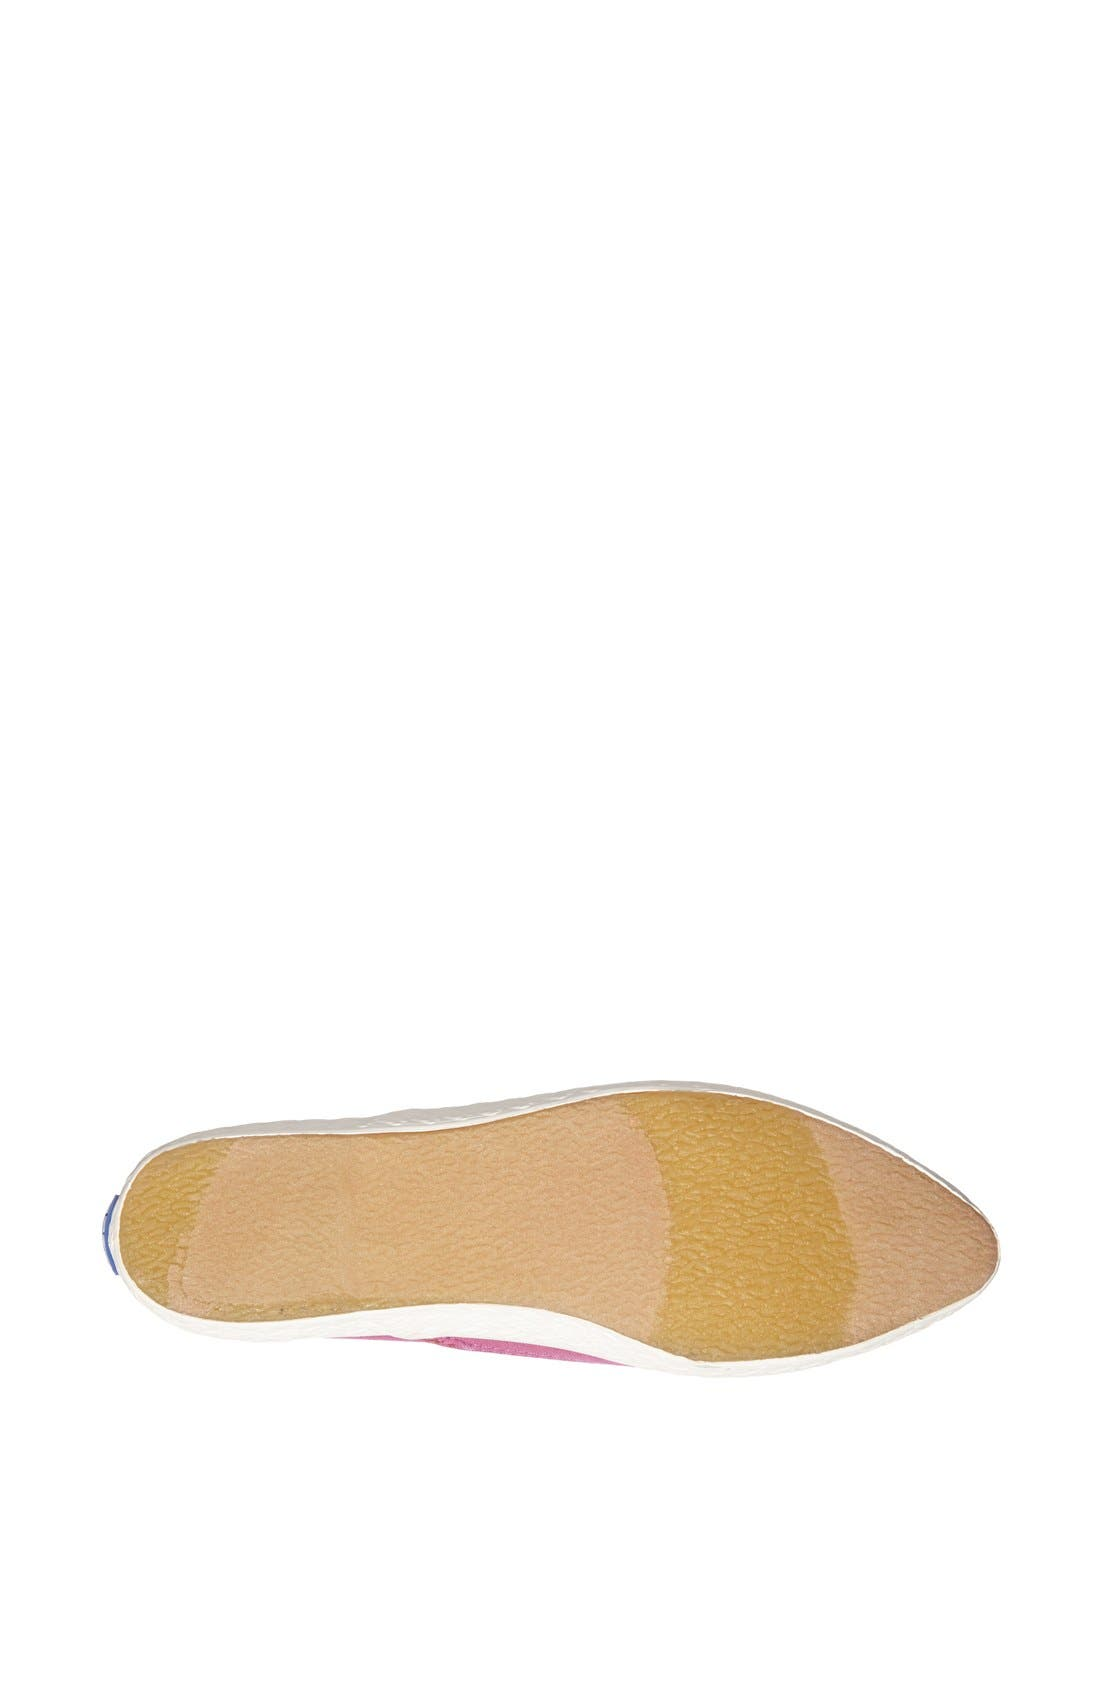 KEDS<SUP>®</SUP> FOR KATE SPADE NEW YORK,                             'pointer' sneaker,                             Alternate thumbnail 3, color,                             669